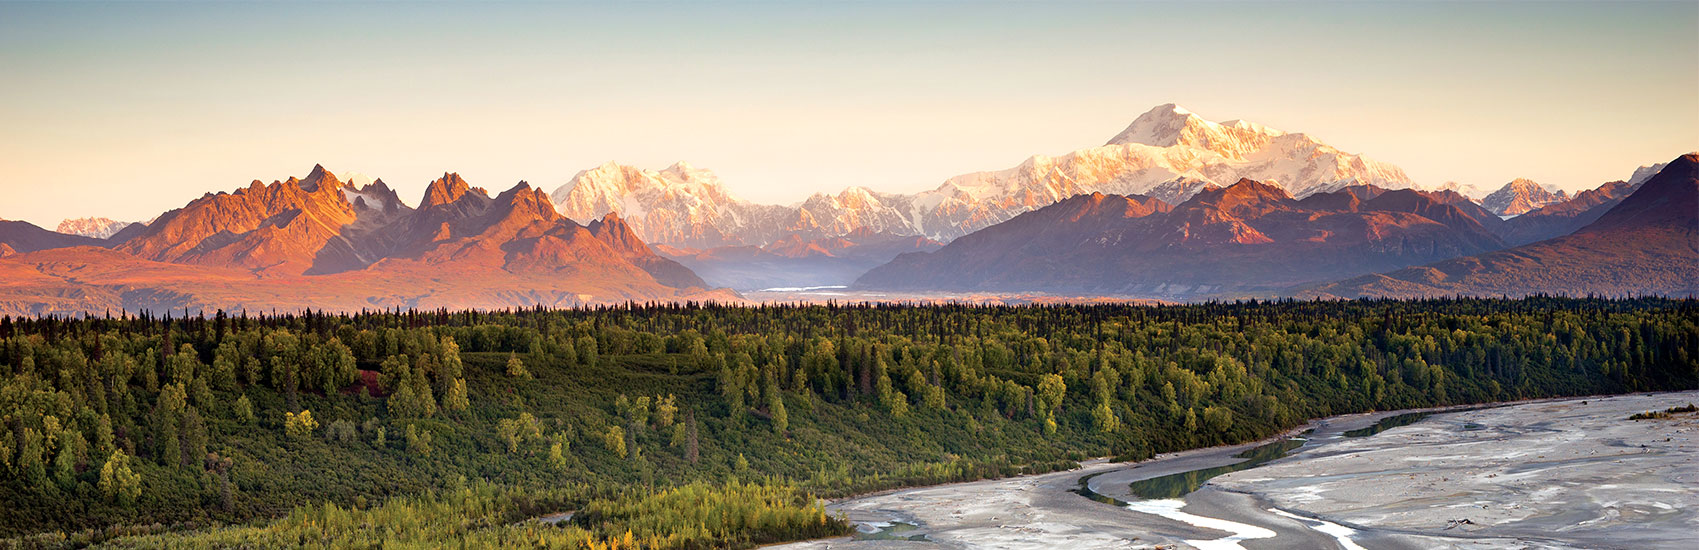 Discover Alaska with Holland America Cruise Line 3